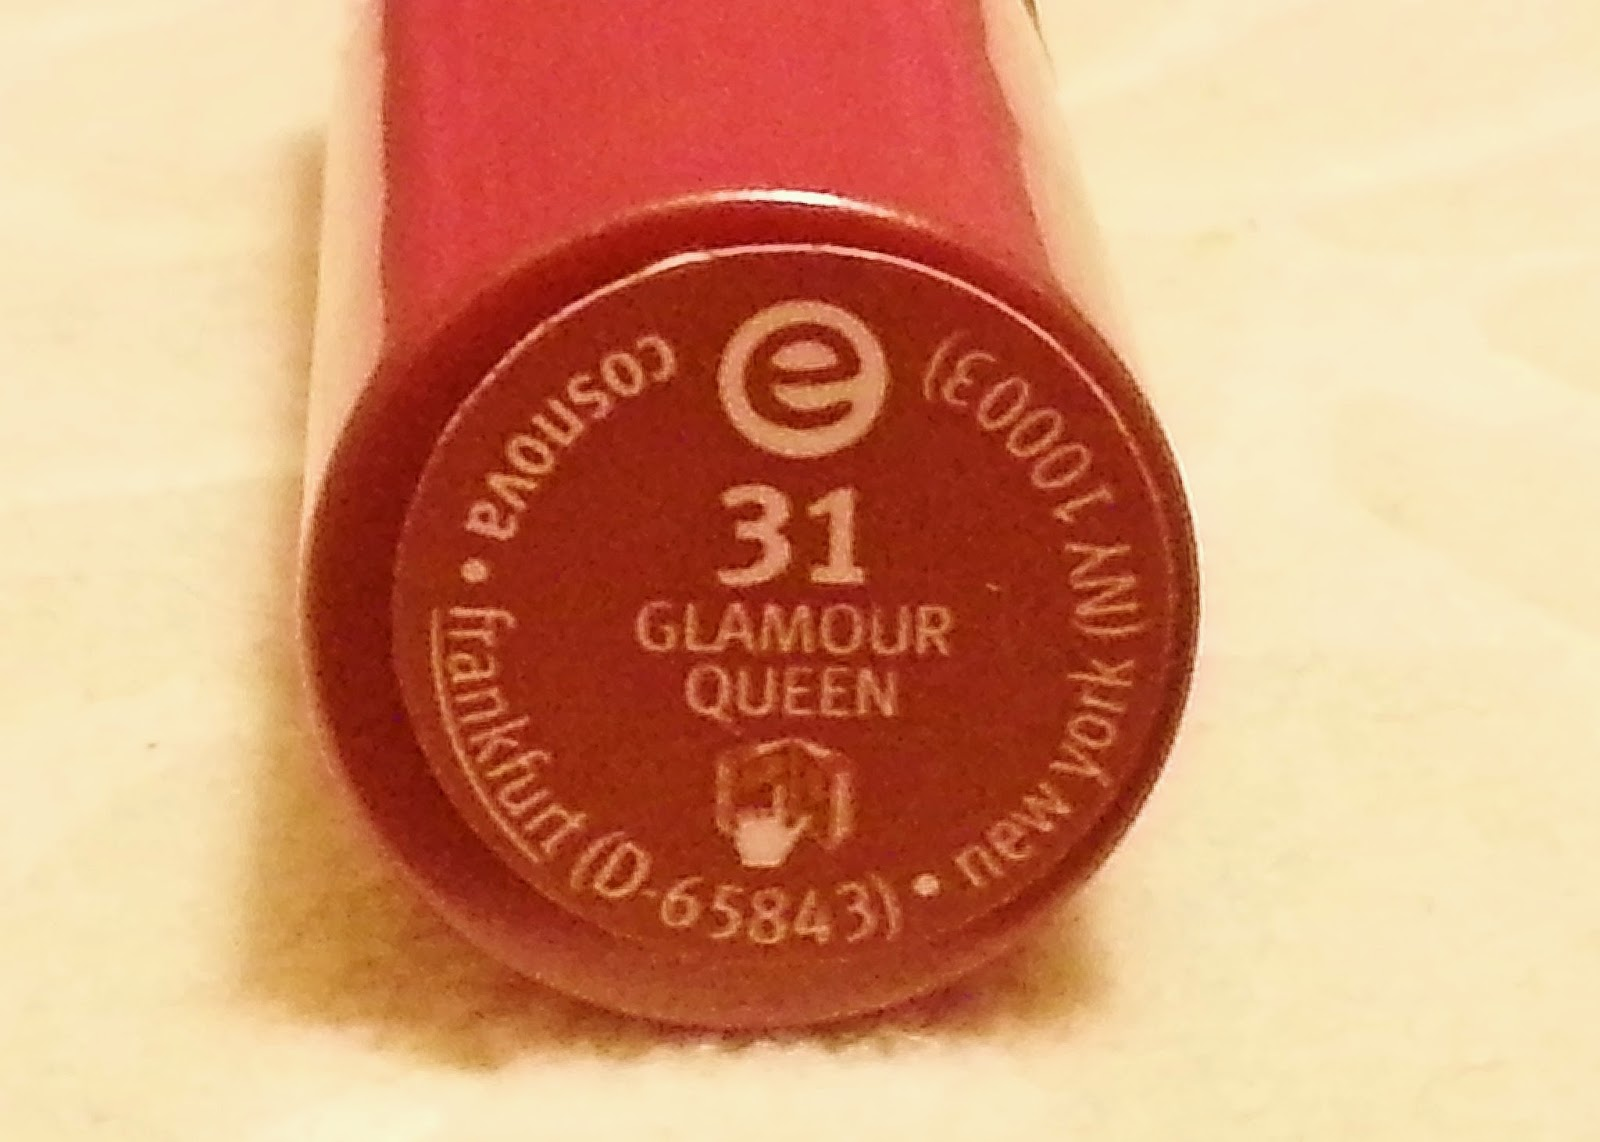 Essence 31 Glamour Queen